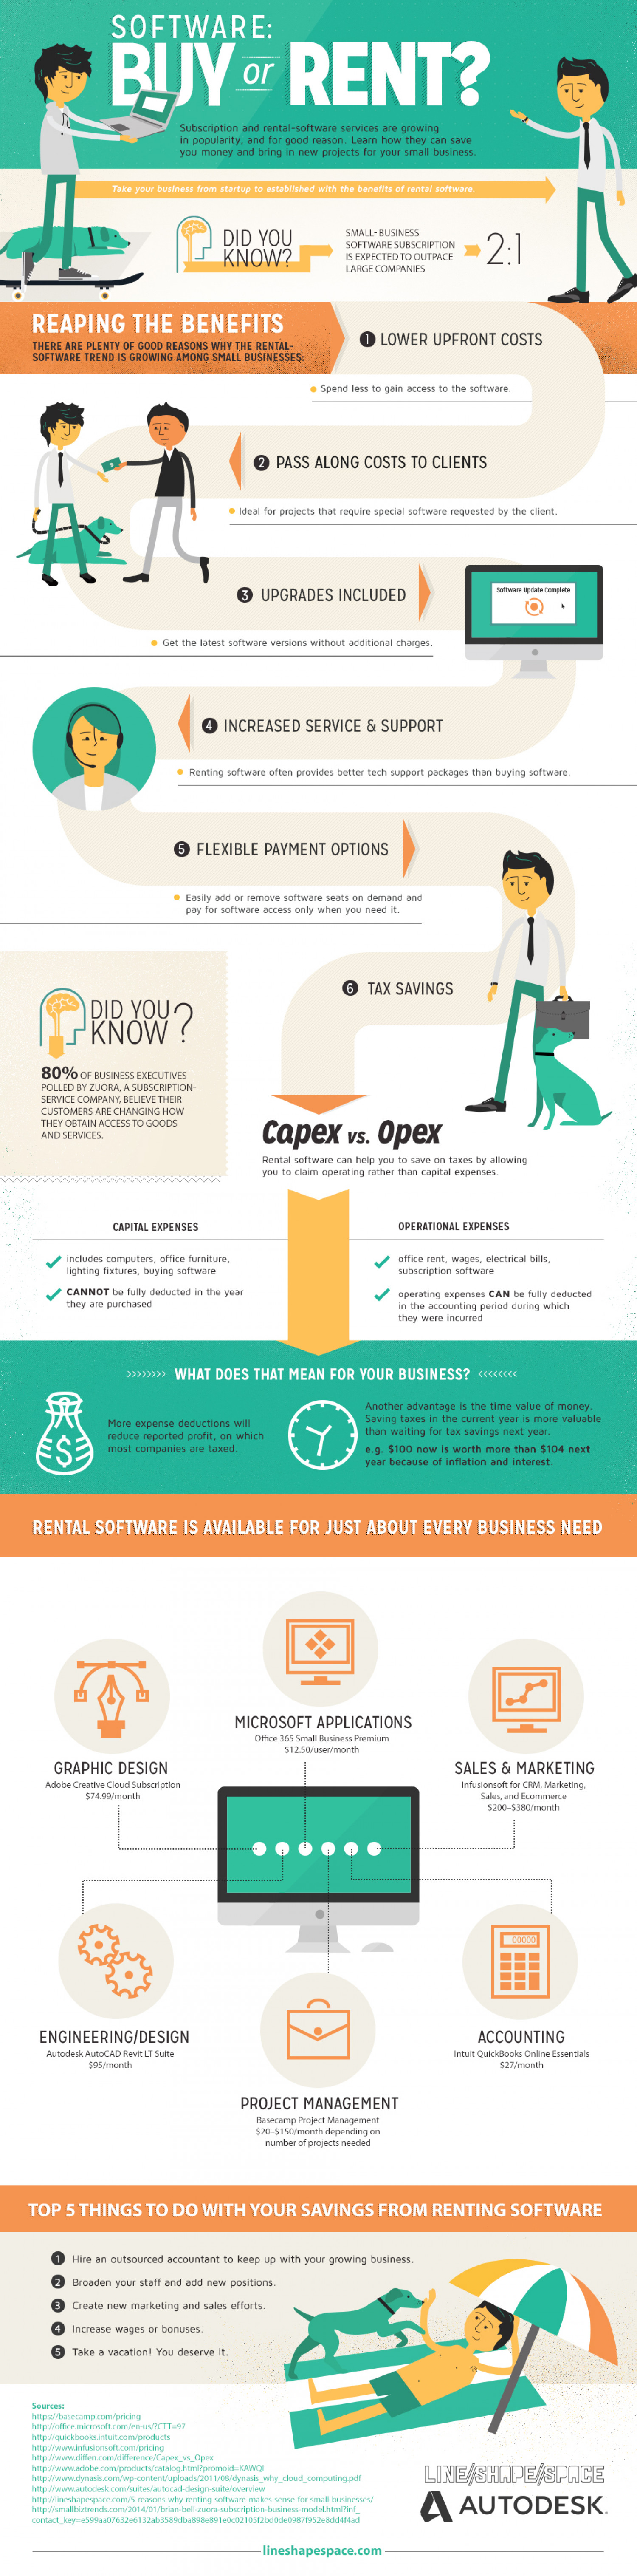 Software: Buy or Rent? Subscription Software for Small Businesses Infographic